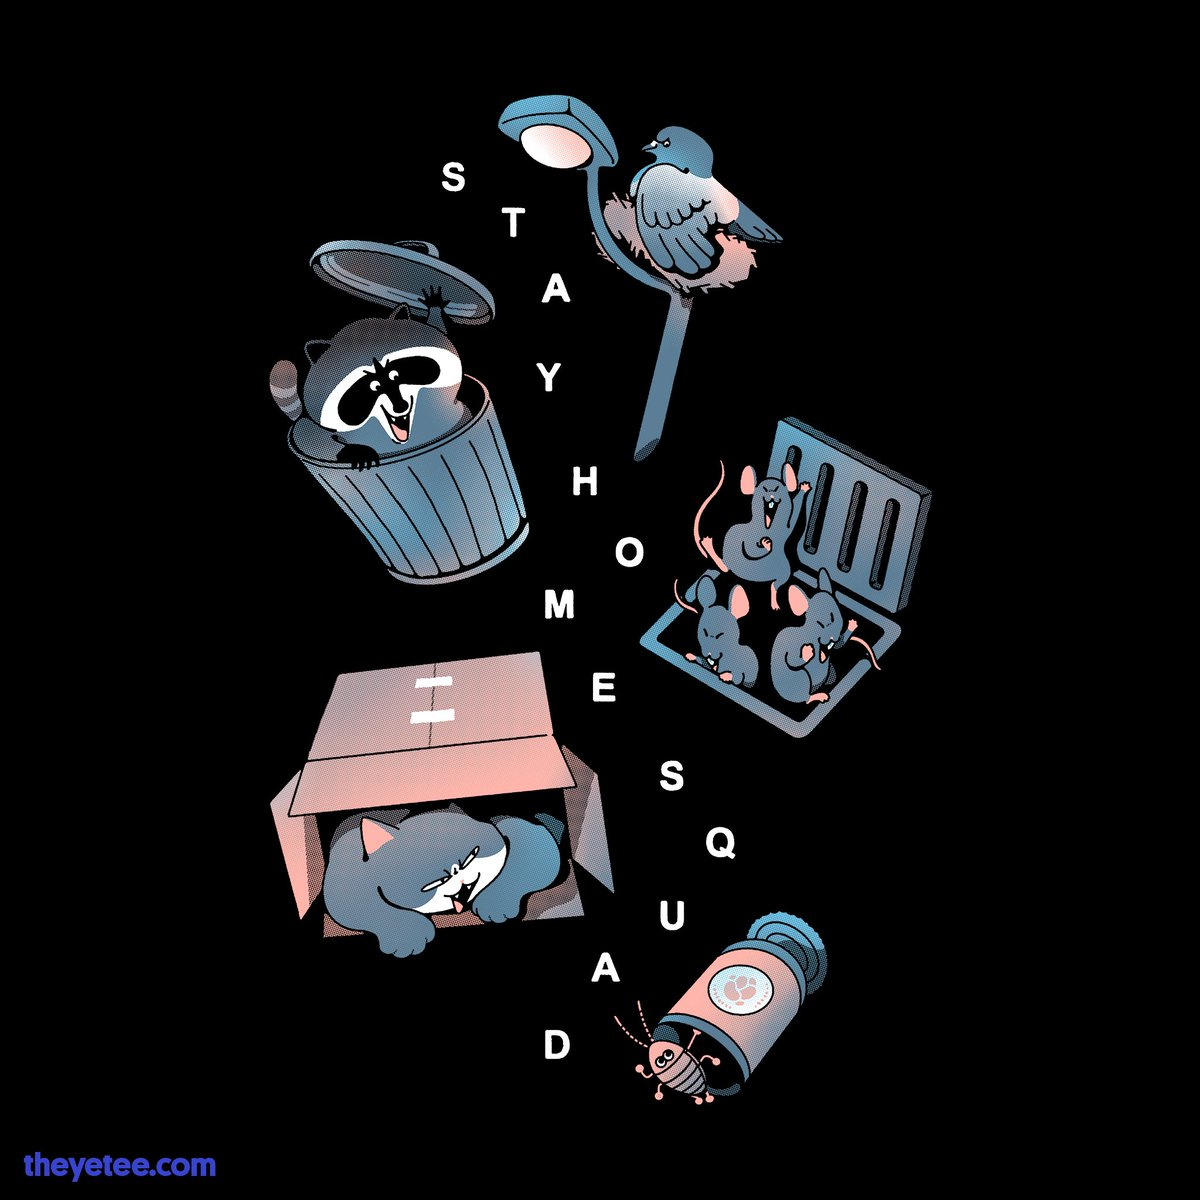 The Yetee On Twitter Home Is Where The Squad Is Even If The Squad Are All Lounging In Piles Of Trash Https T Co 87qafwbom2 Awesome tees for your torso! twitter